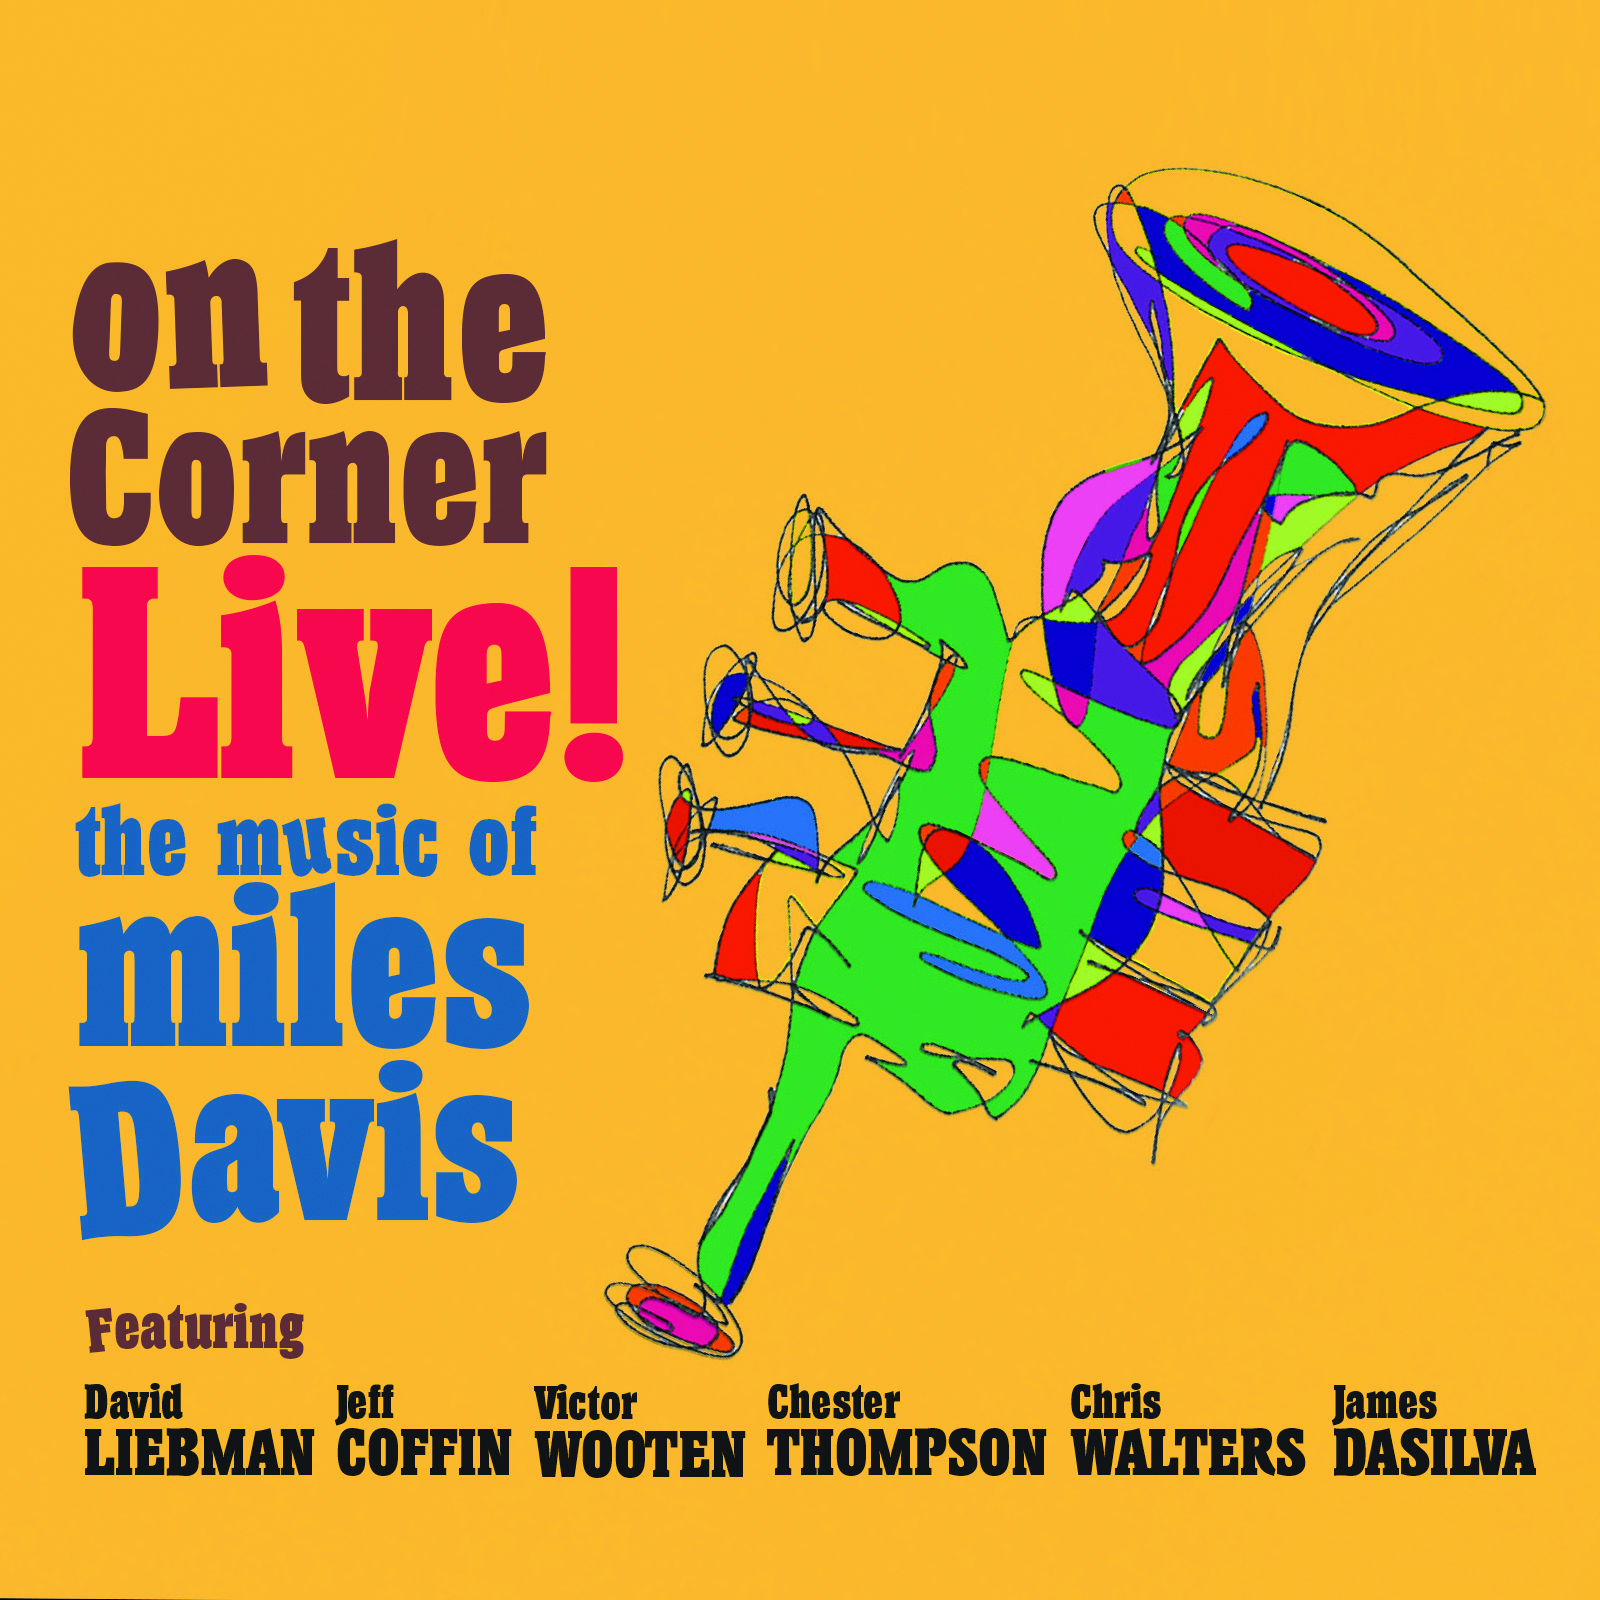 Ear Up Records To Release ON THE CORNER LIVE with Liebman & Coffin – 3.1.19